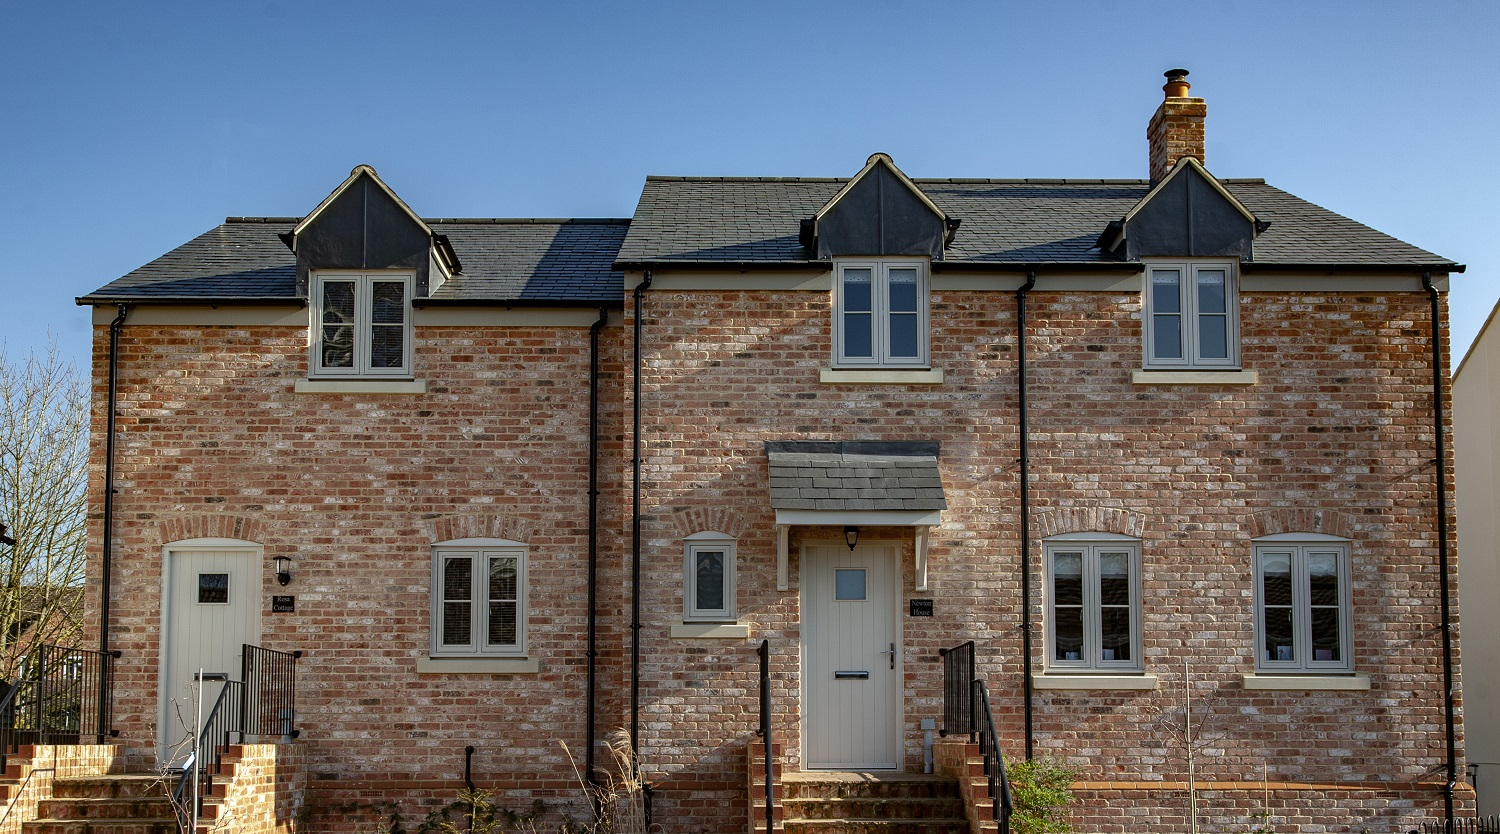 West Port Timber Windows and Timber Doors in a new residential property